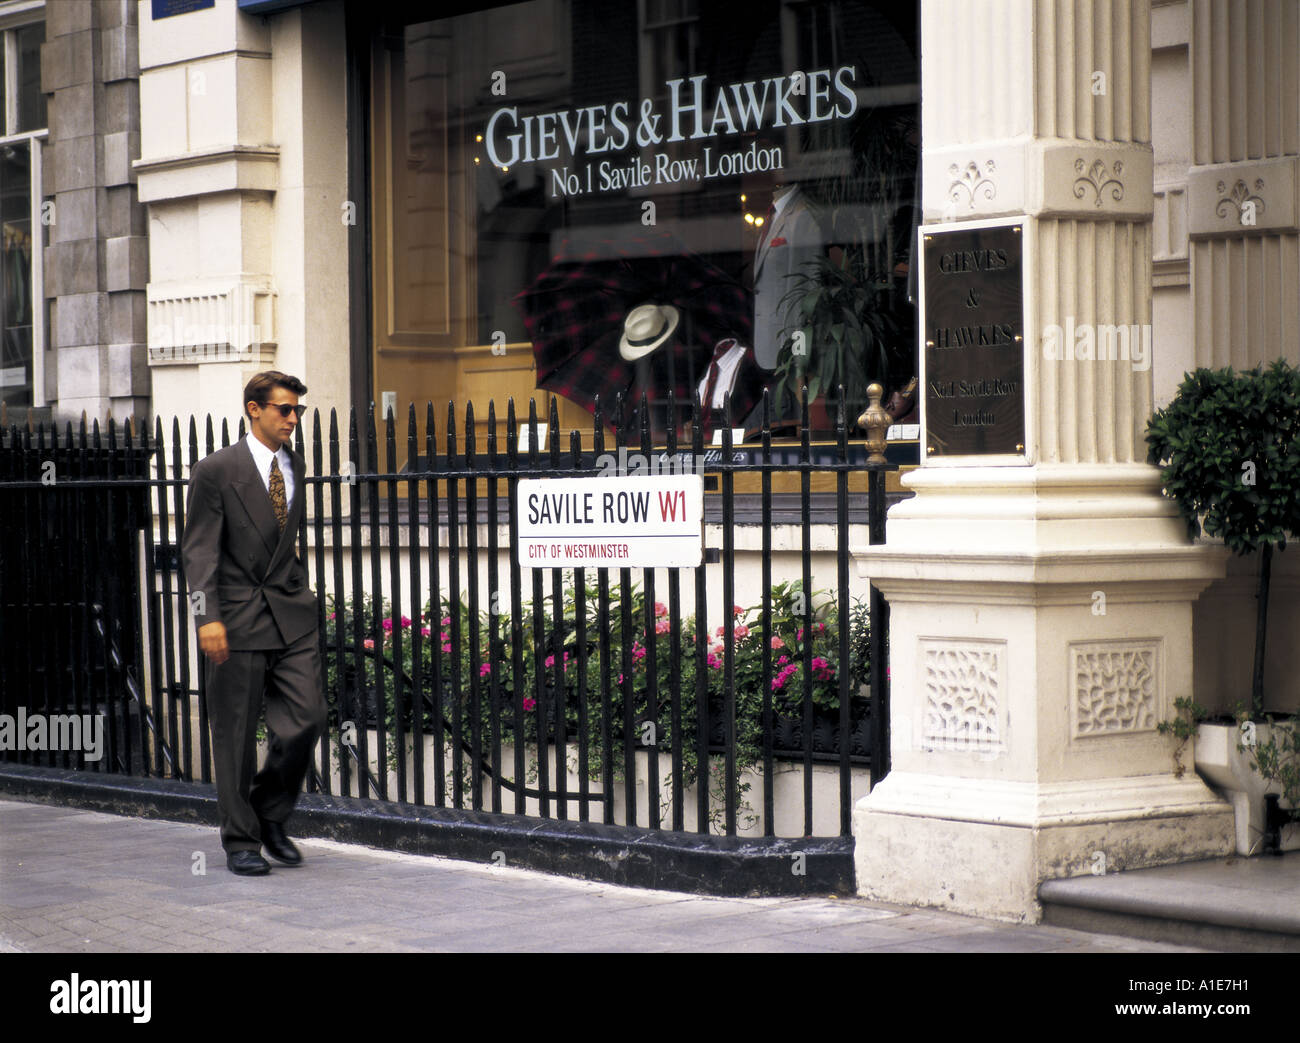 Tailor shop in Saville Row in London, England - Stock Image